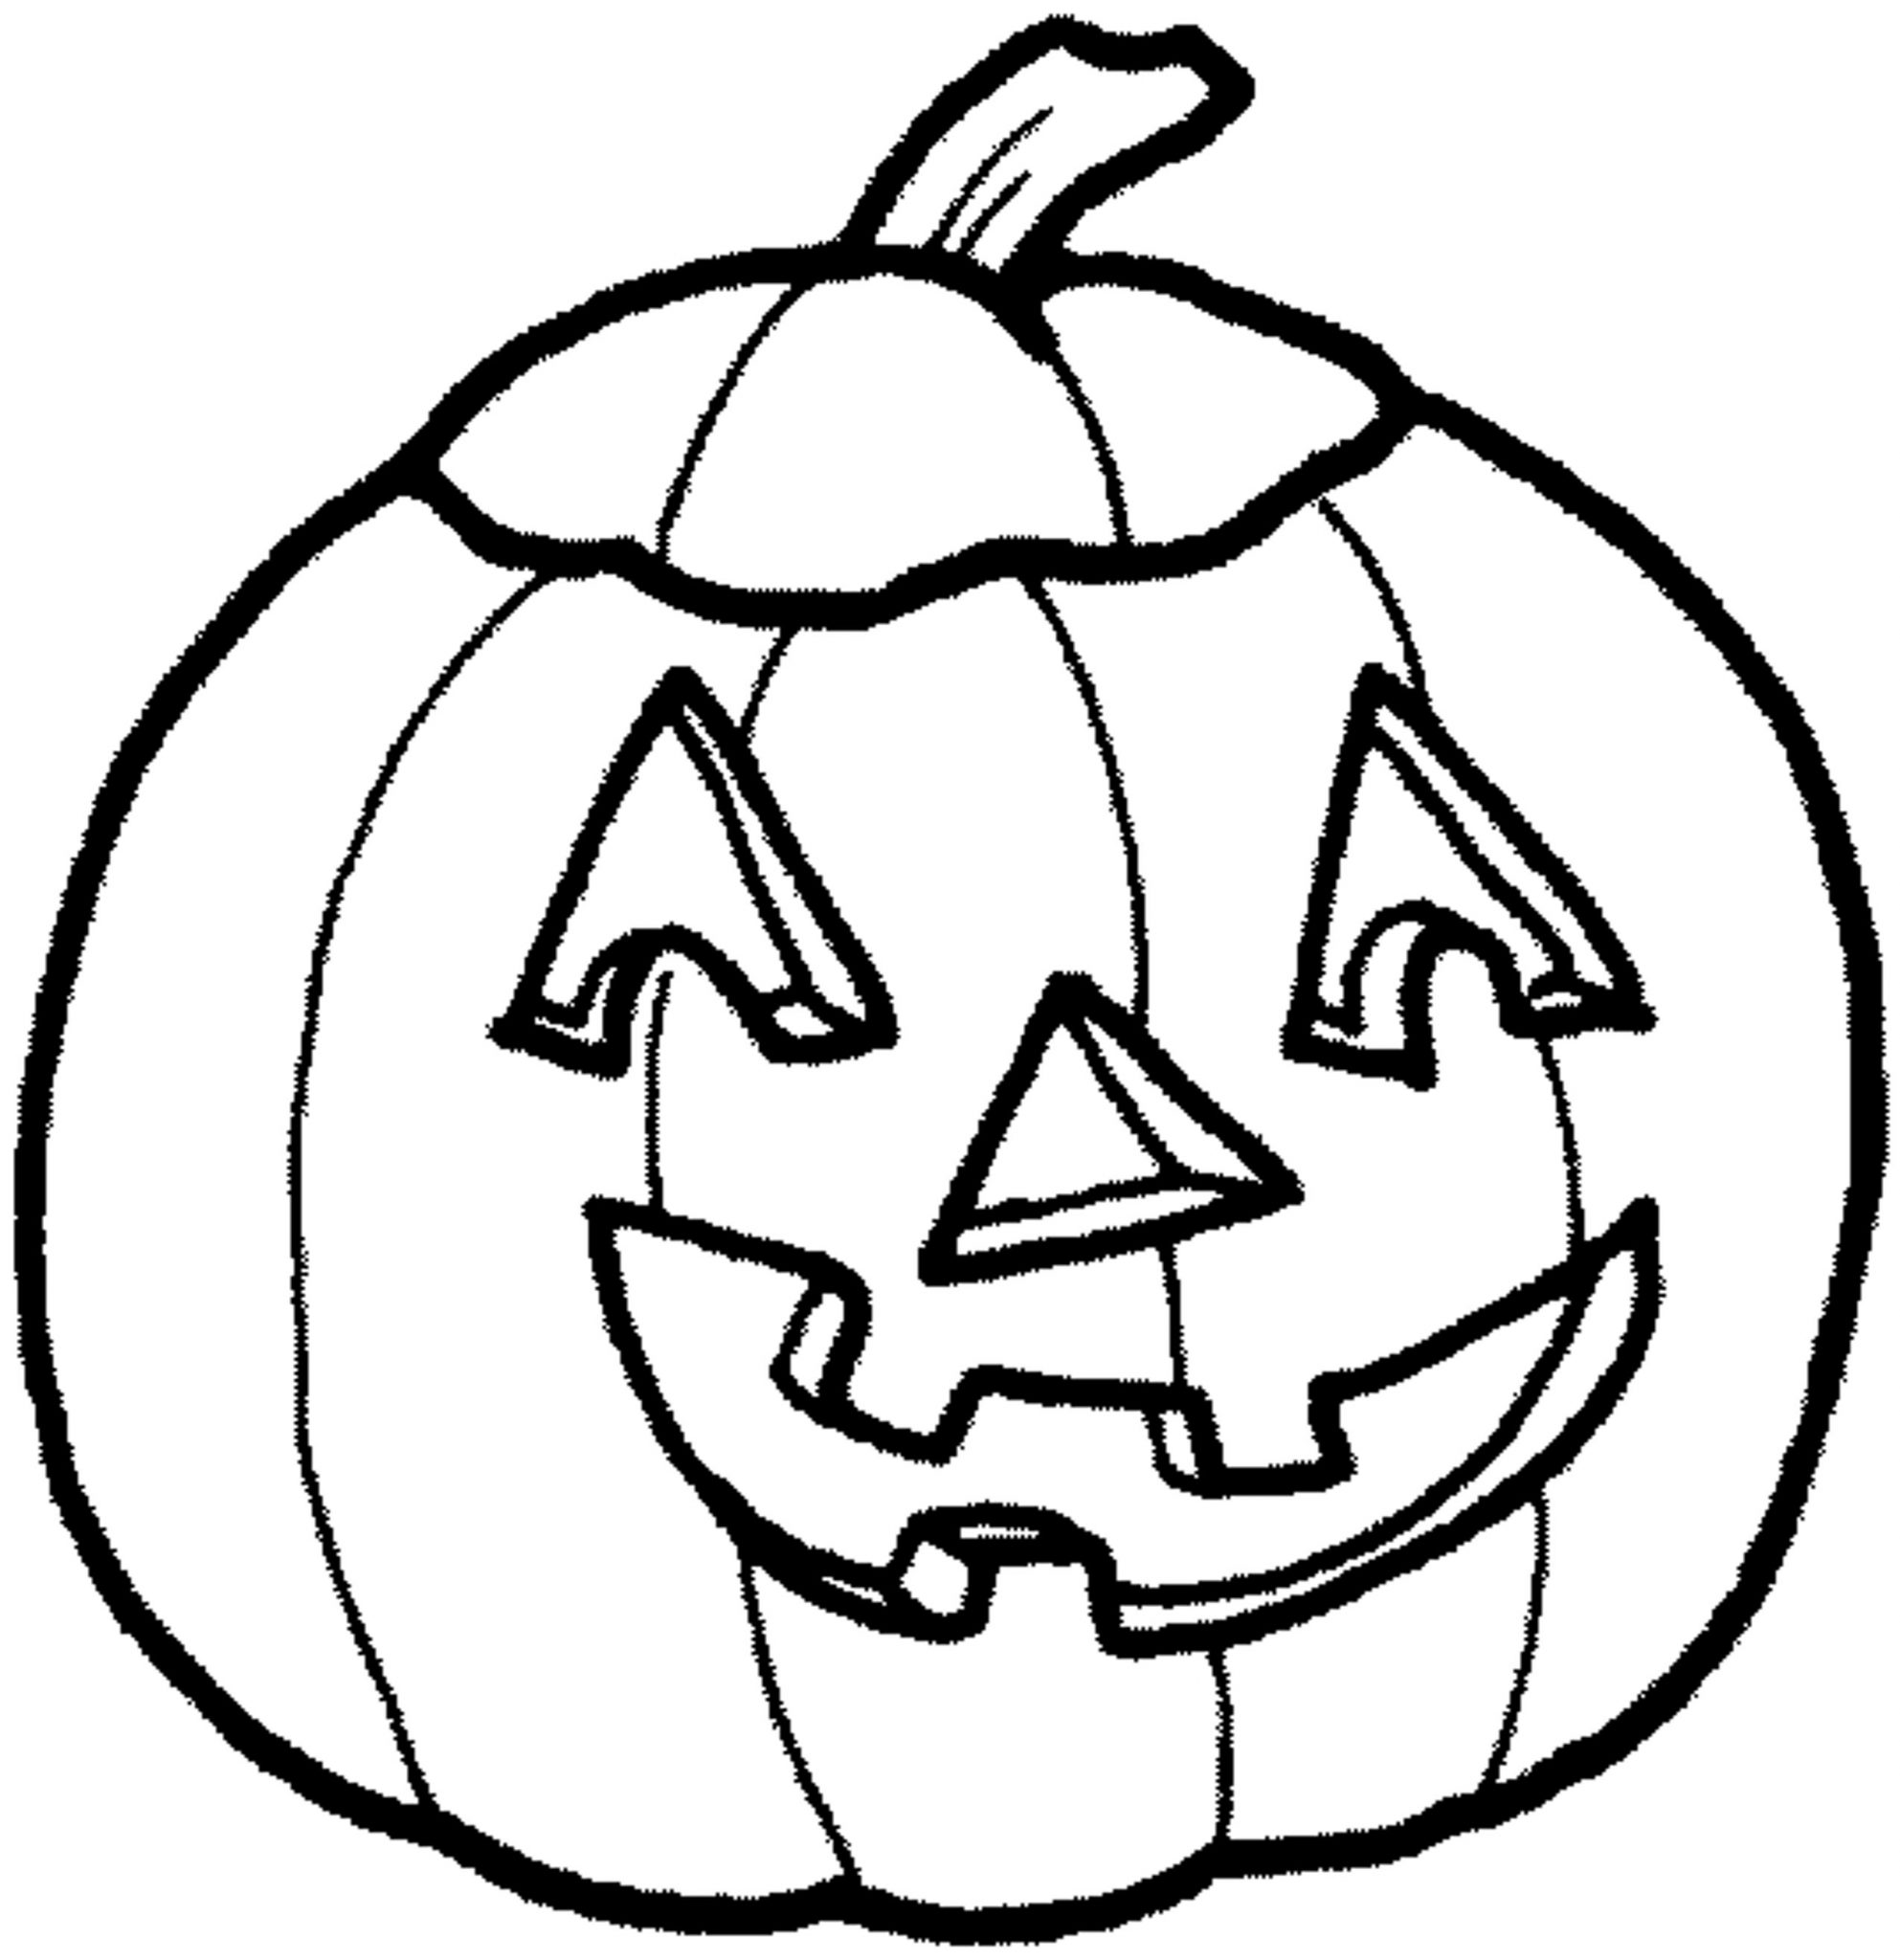 pumpkin pictures to print printable pumpkin coloring page for kids 4 supplyme print to pumpkin pictures